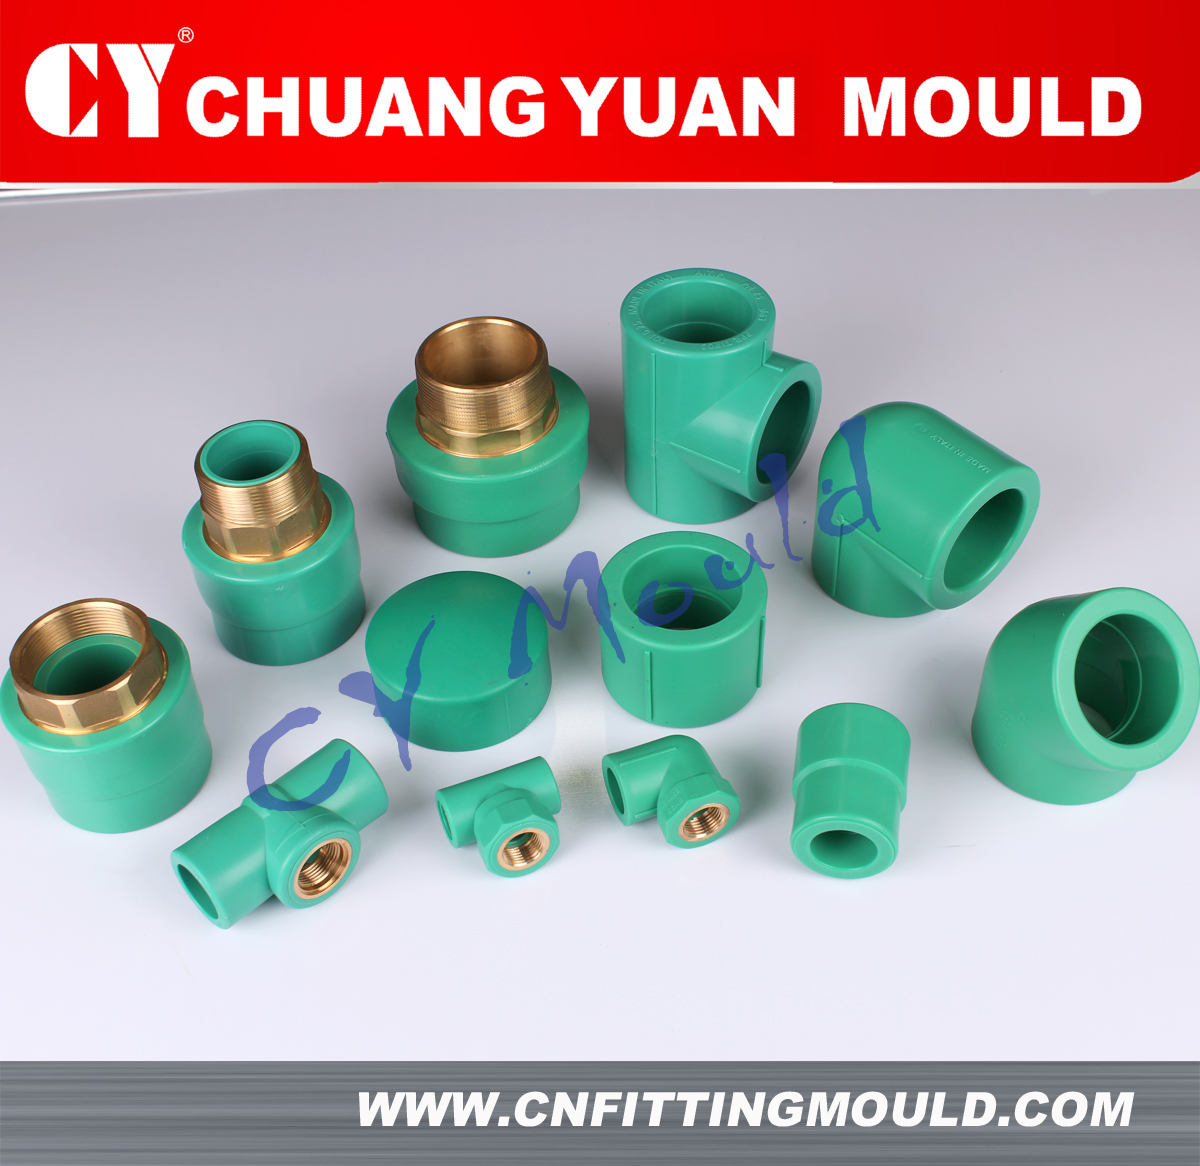 PPR fitting mould